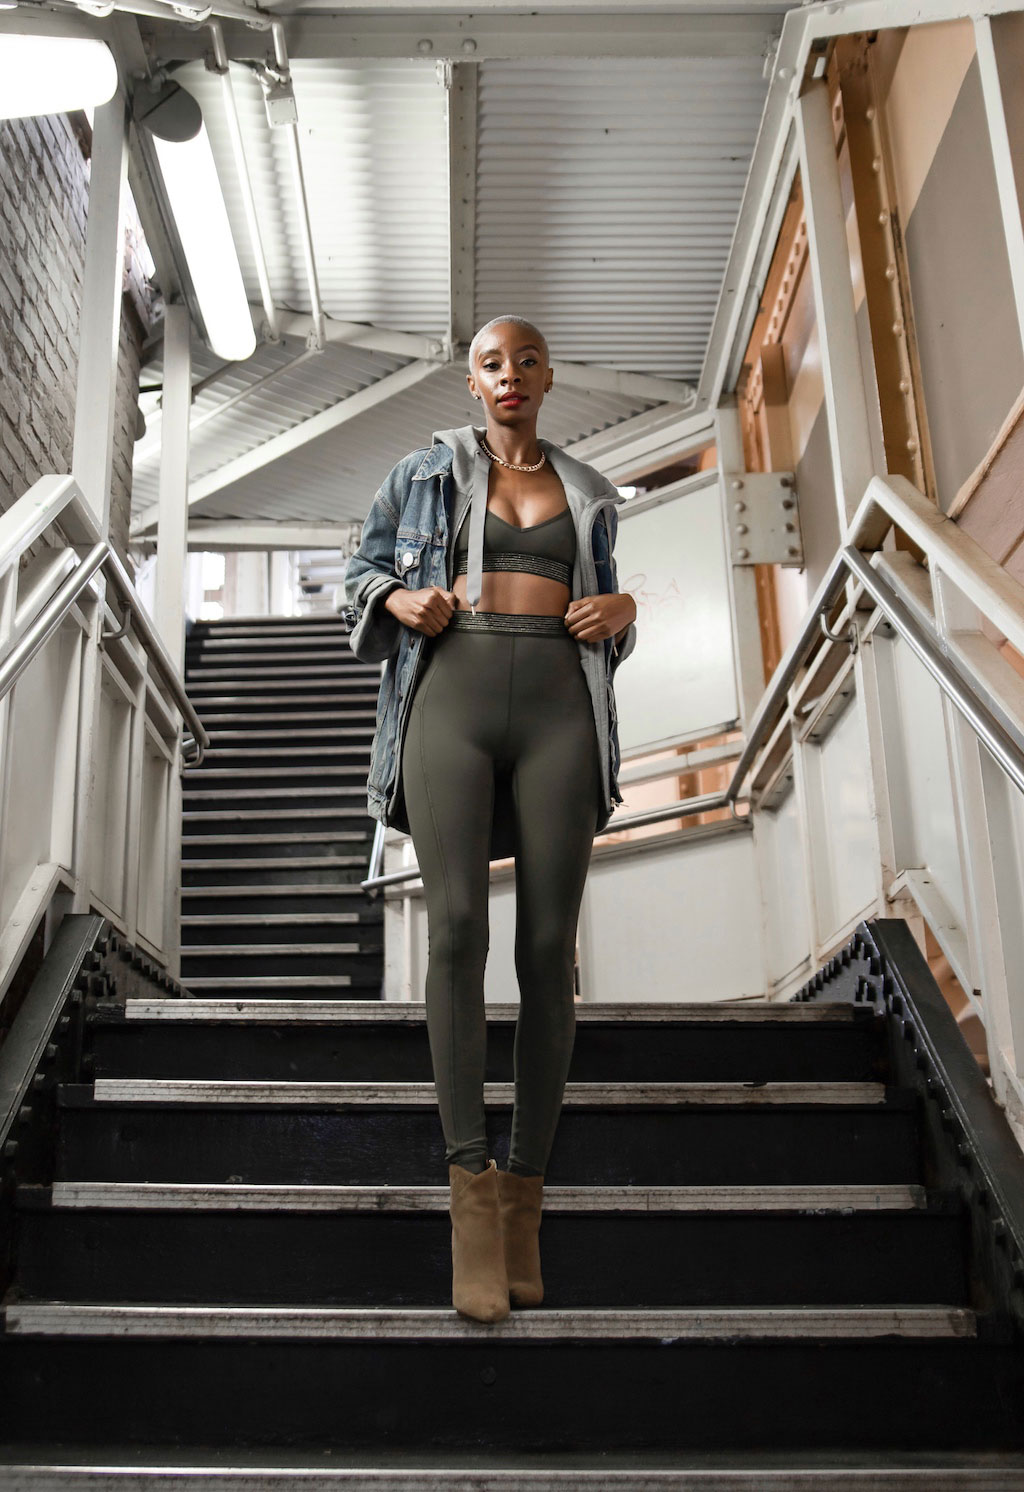 da037ec3ed I styled the Principal Dancer Golden Lining Tights and Bralette (in shade   armory ) with the Principle Dancer Hoodie (in grey) and a denim jacket and  ...